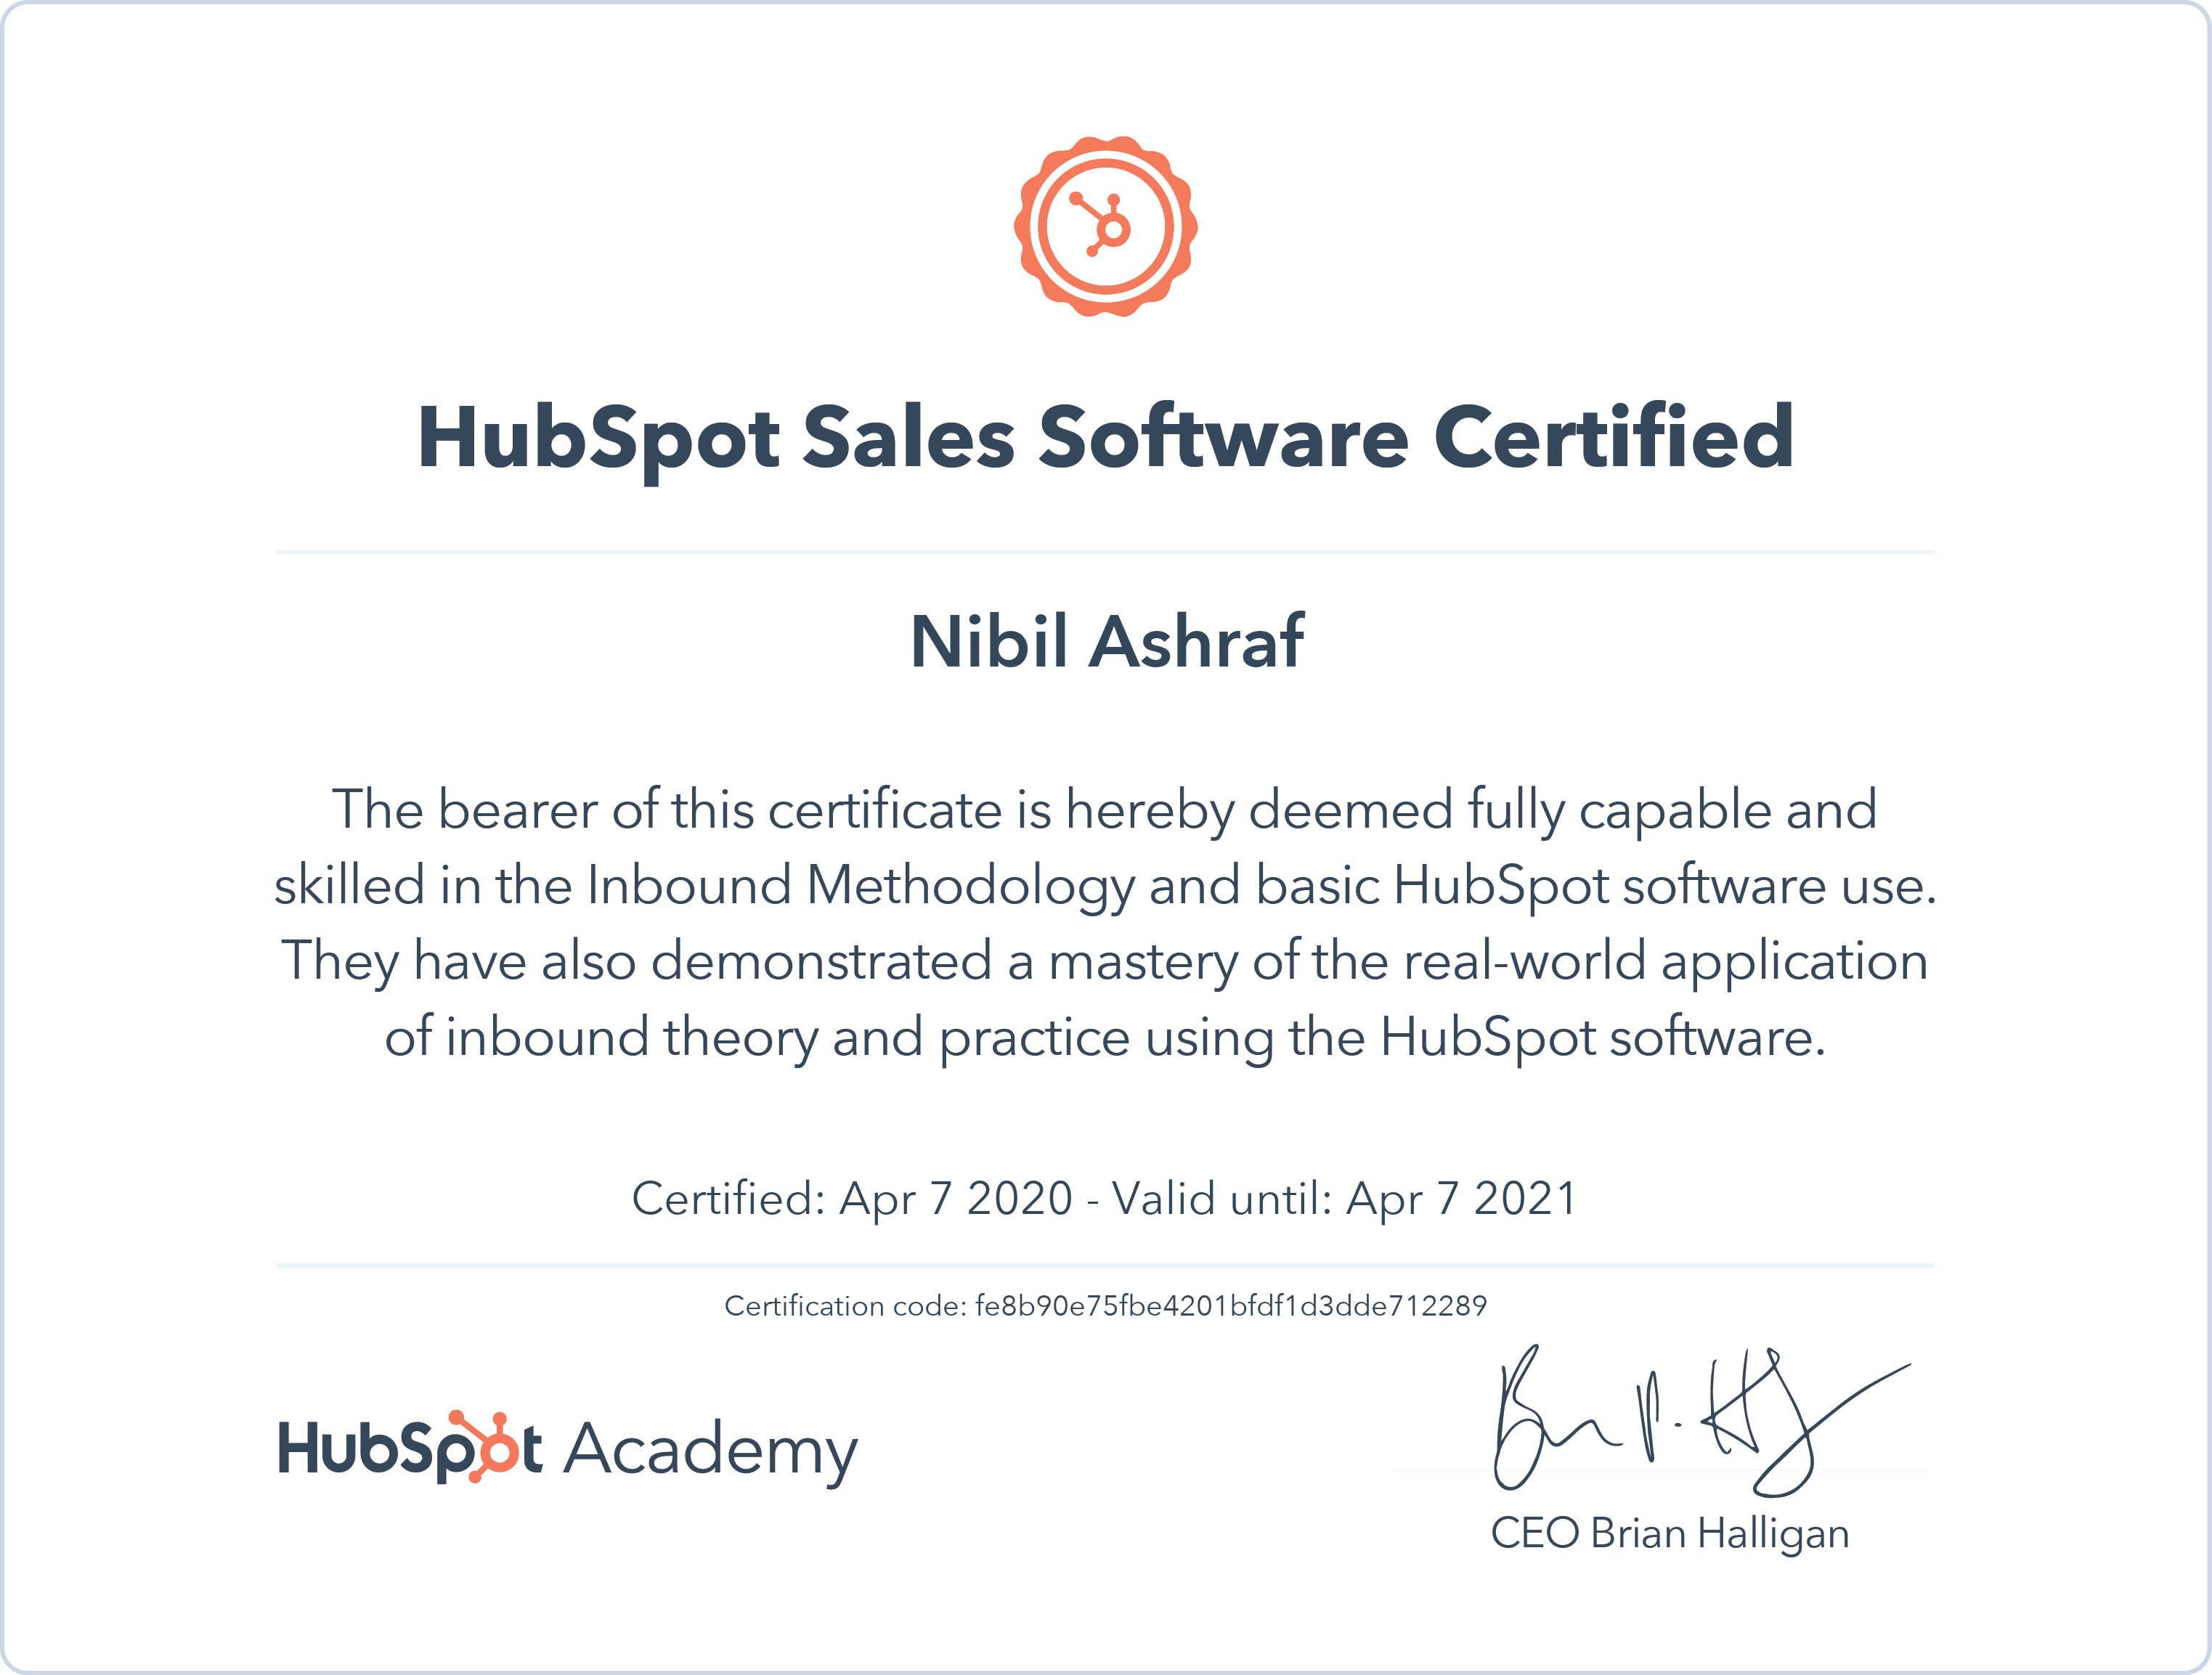 Nibil - HubSpot Sales Software Certification